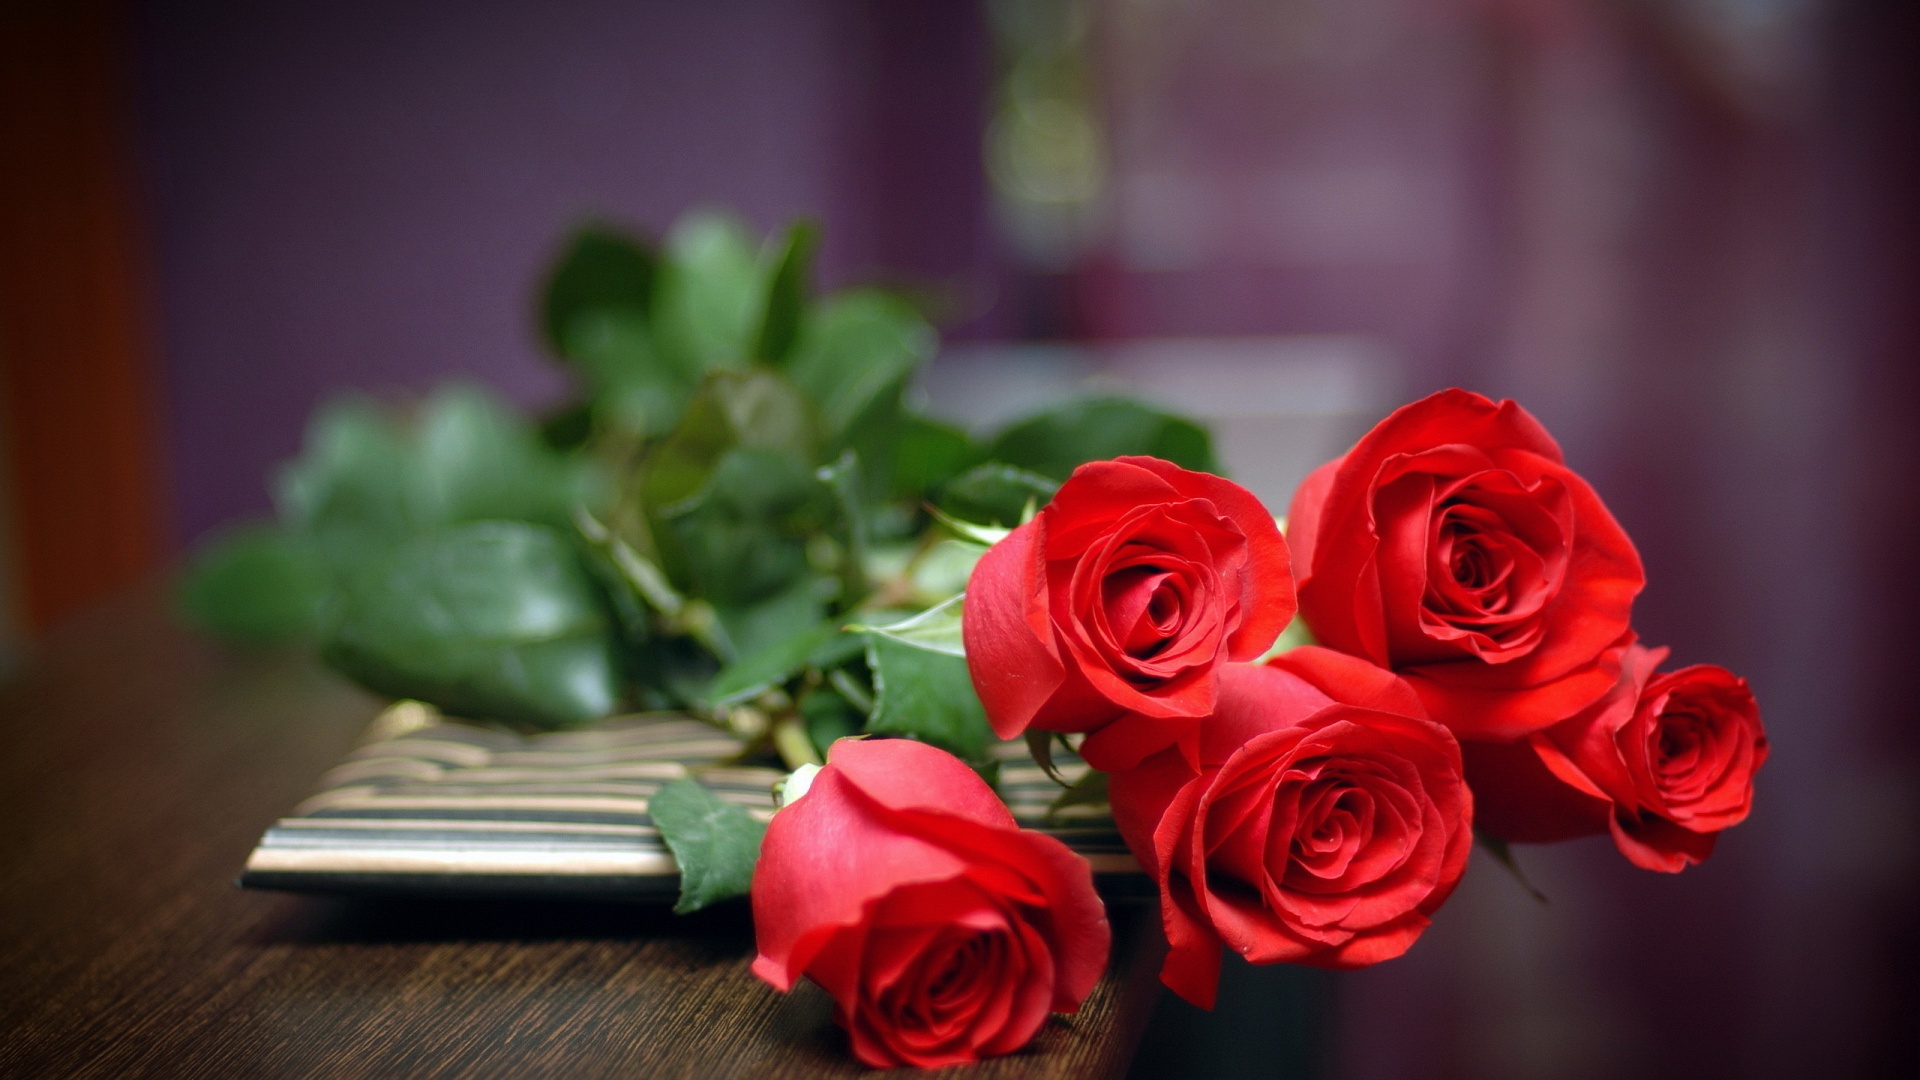 Red Roses Wallpapers HD A24